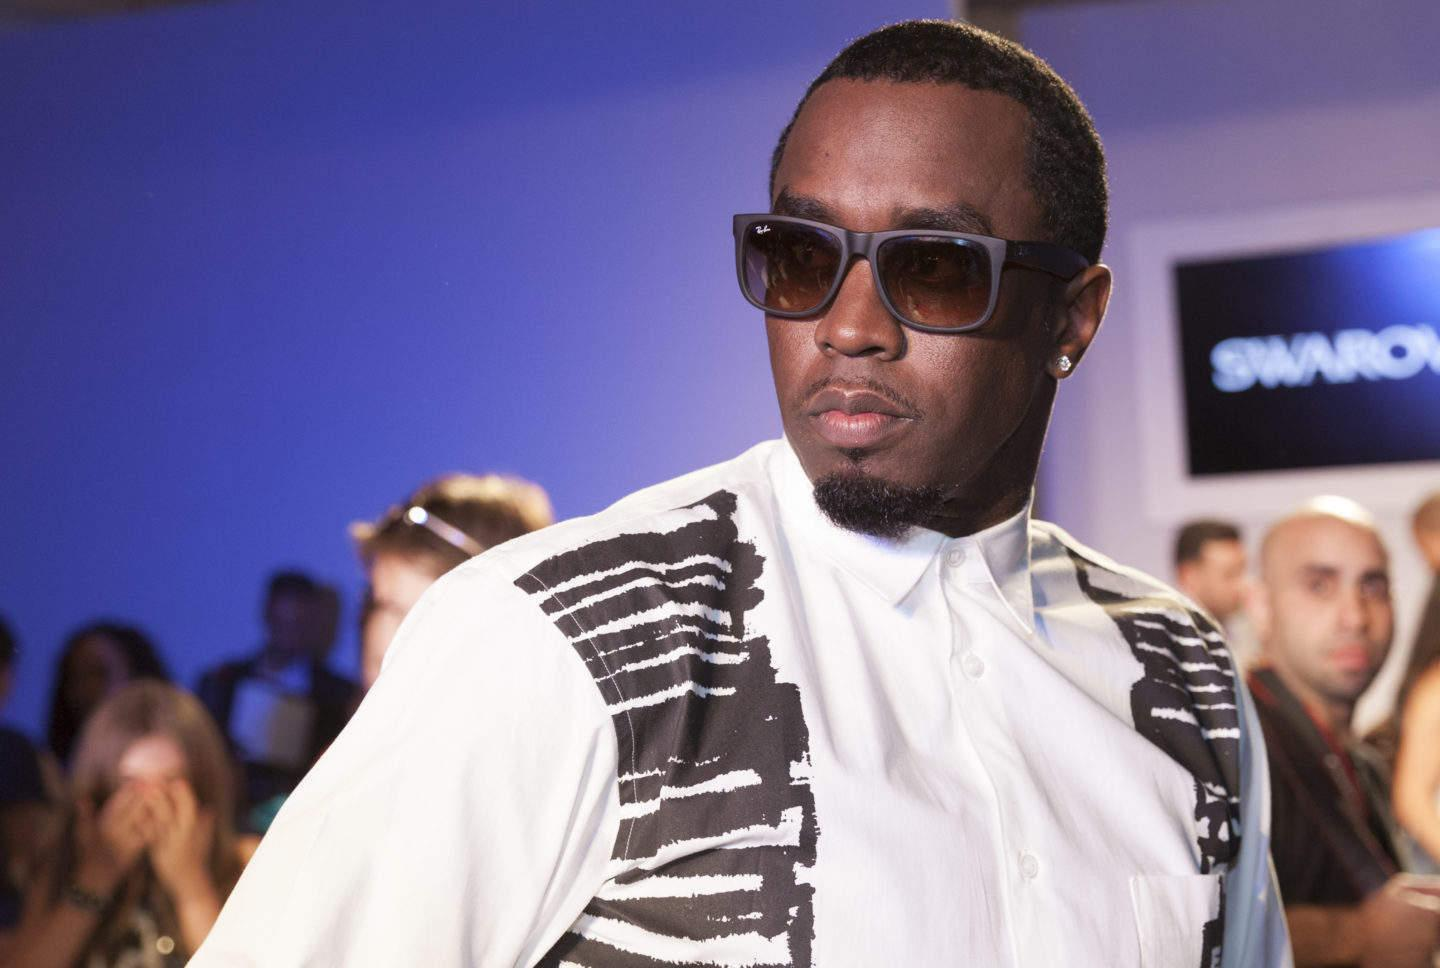 Diddy's Most Recent Video Has Fans Laughing Their Hearts Out - Check Out The Reason Here